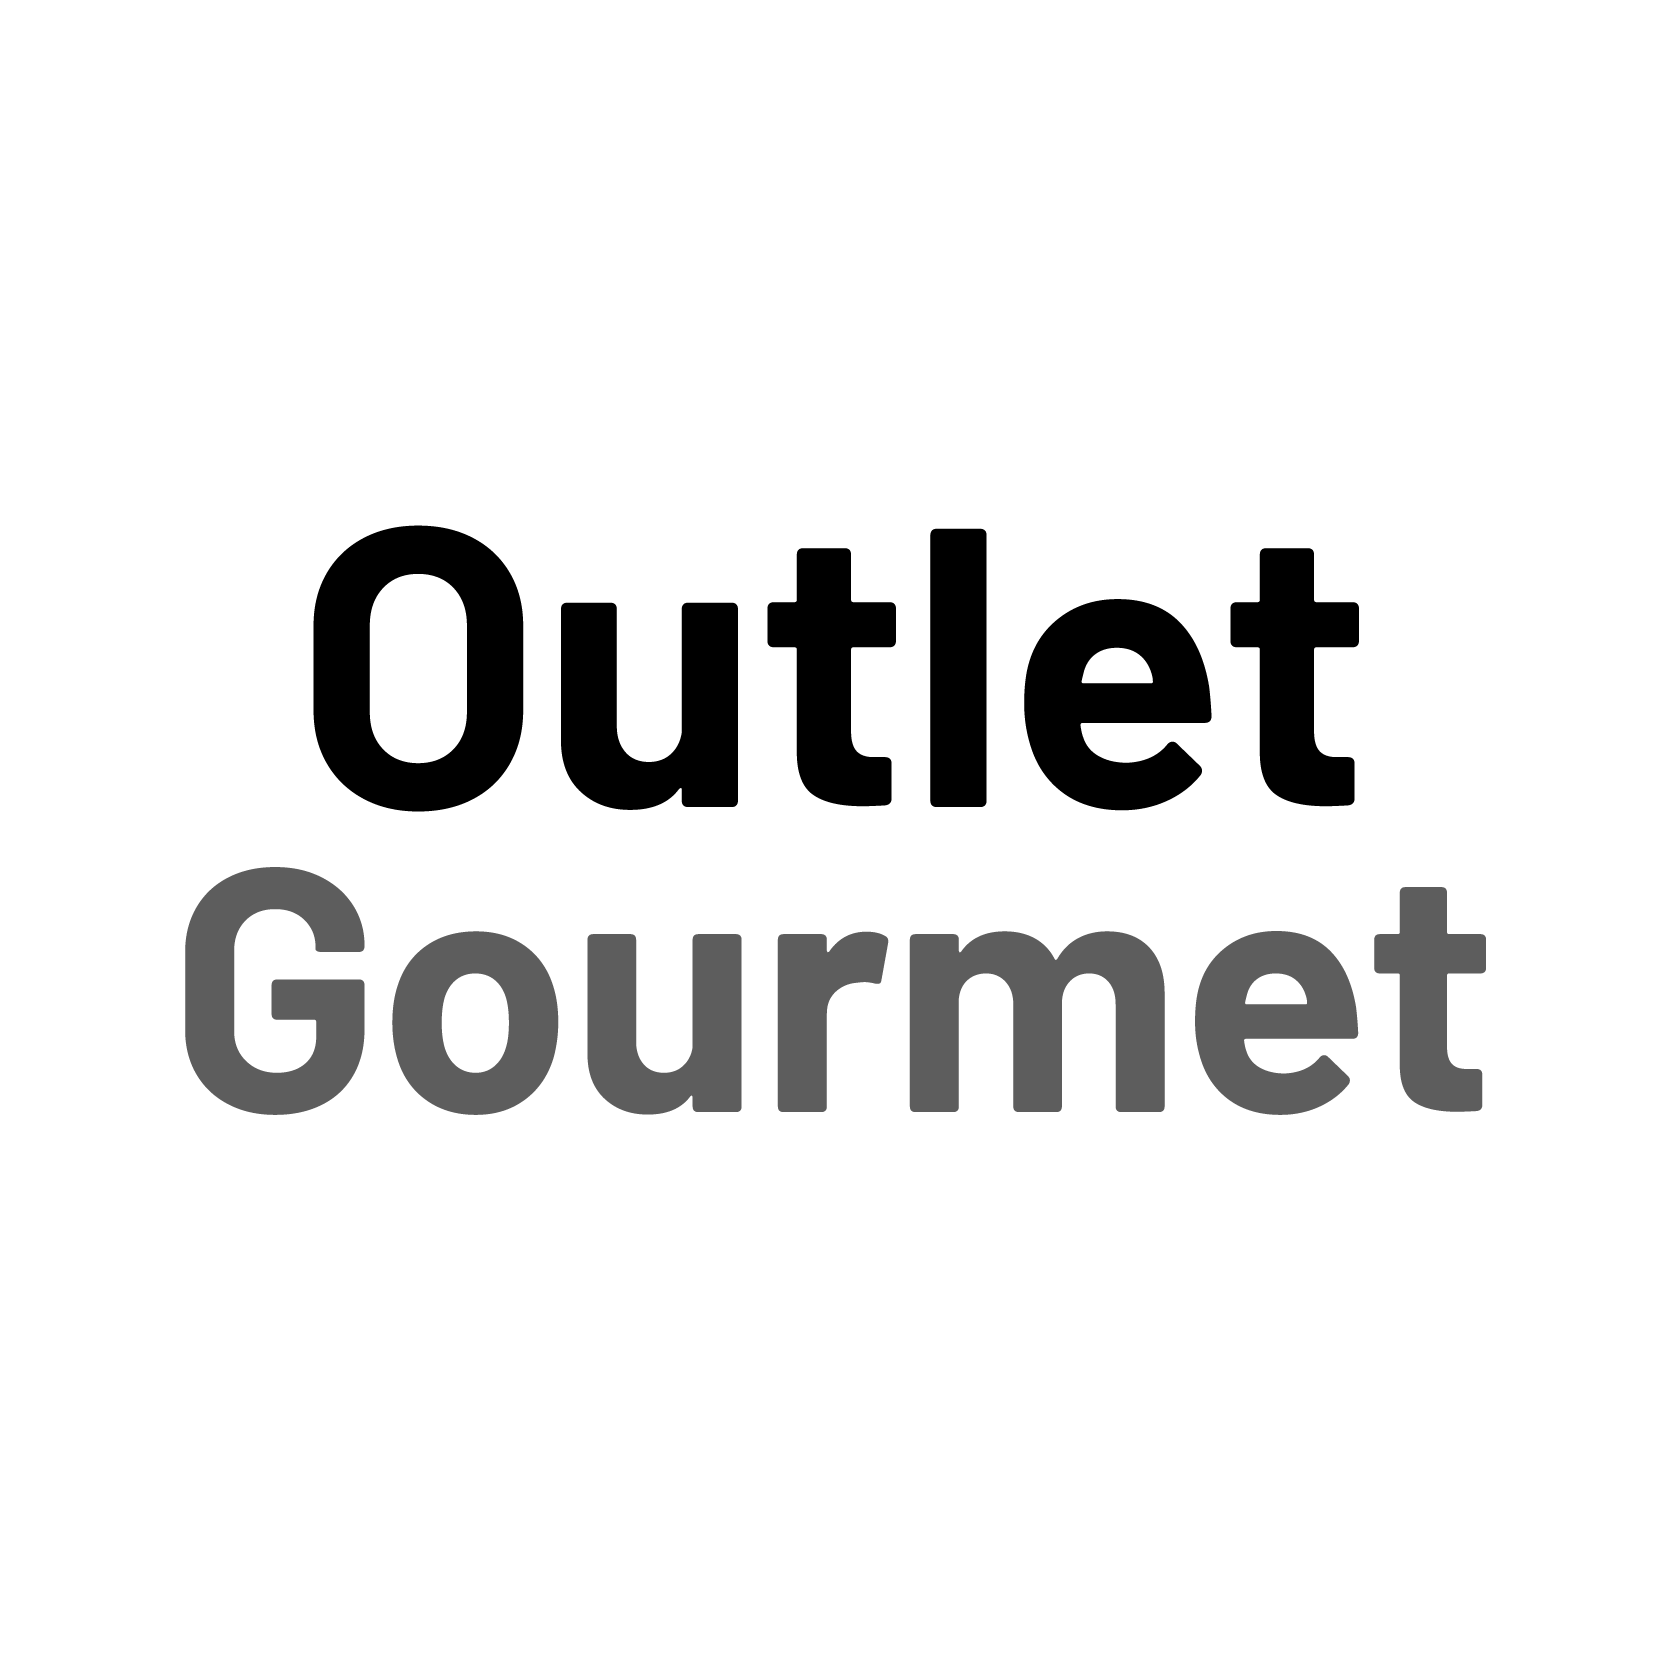 Outlet Gourmet